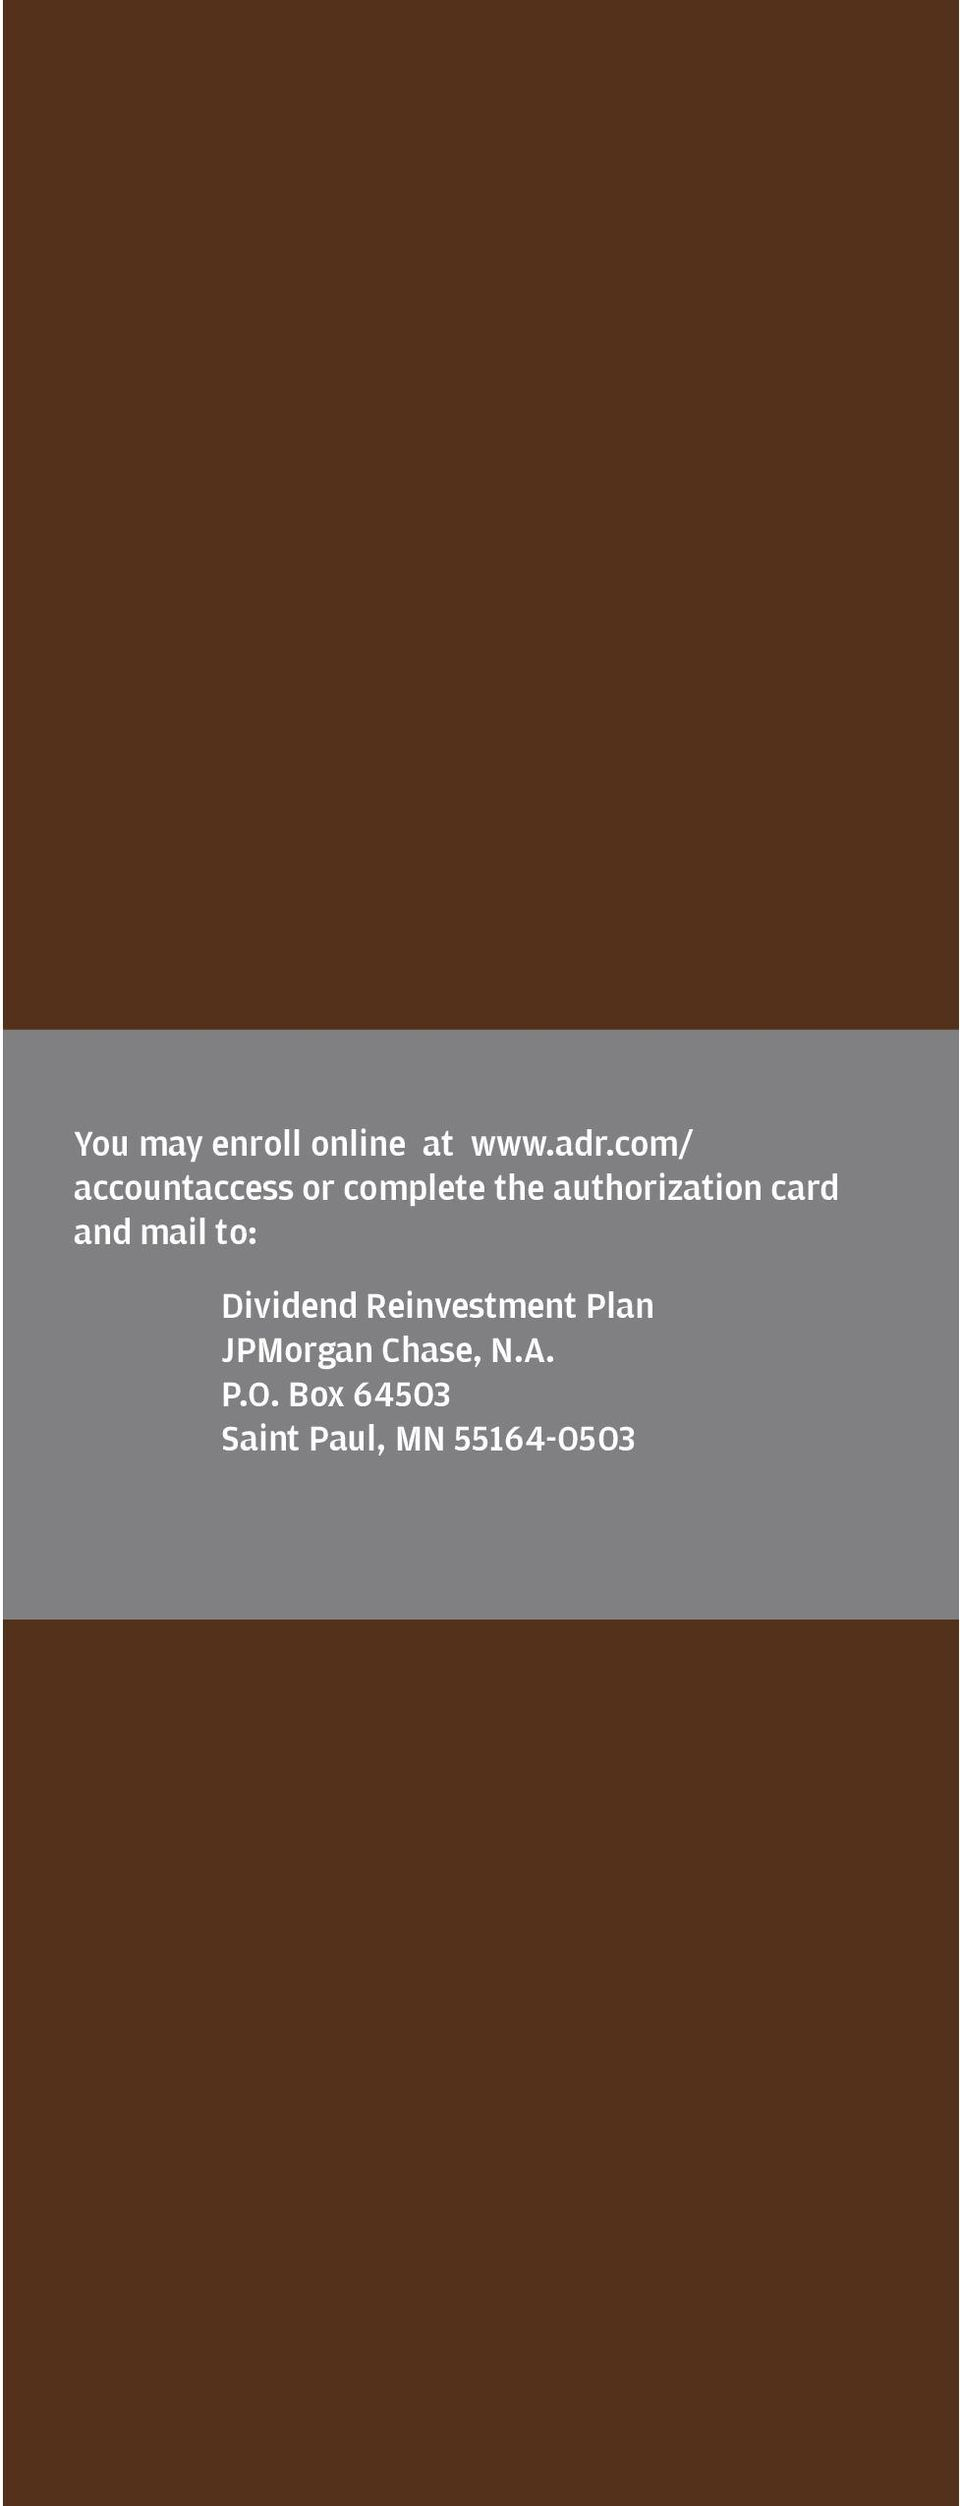 authorization card and mail to: Dividend